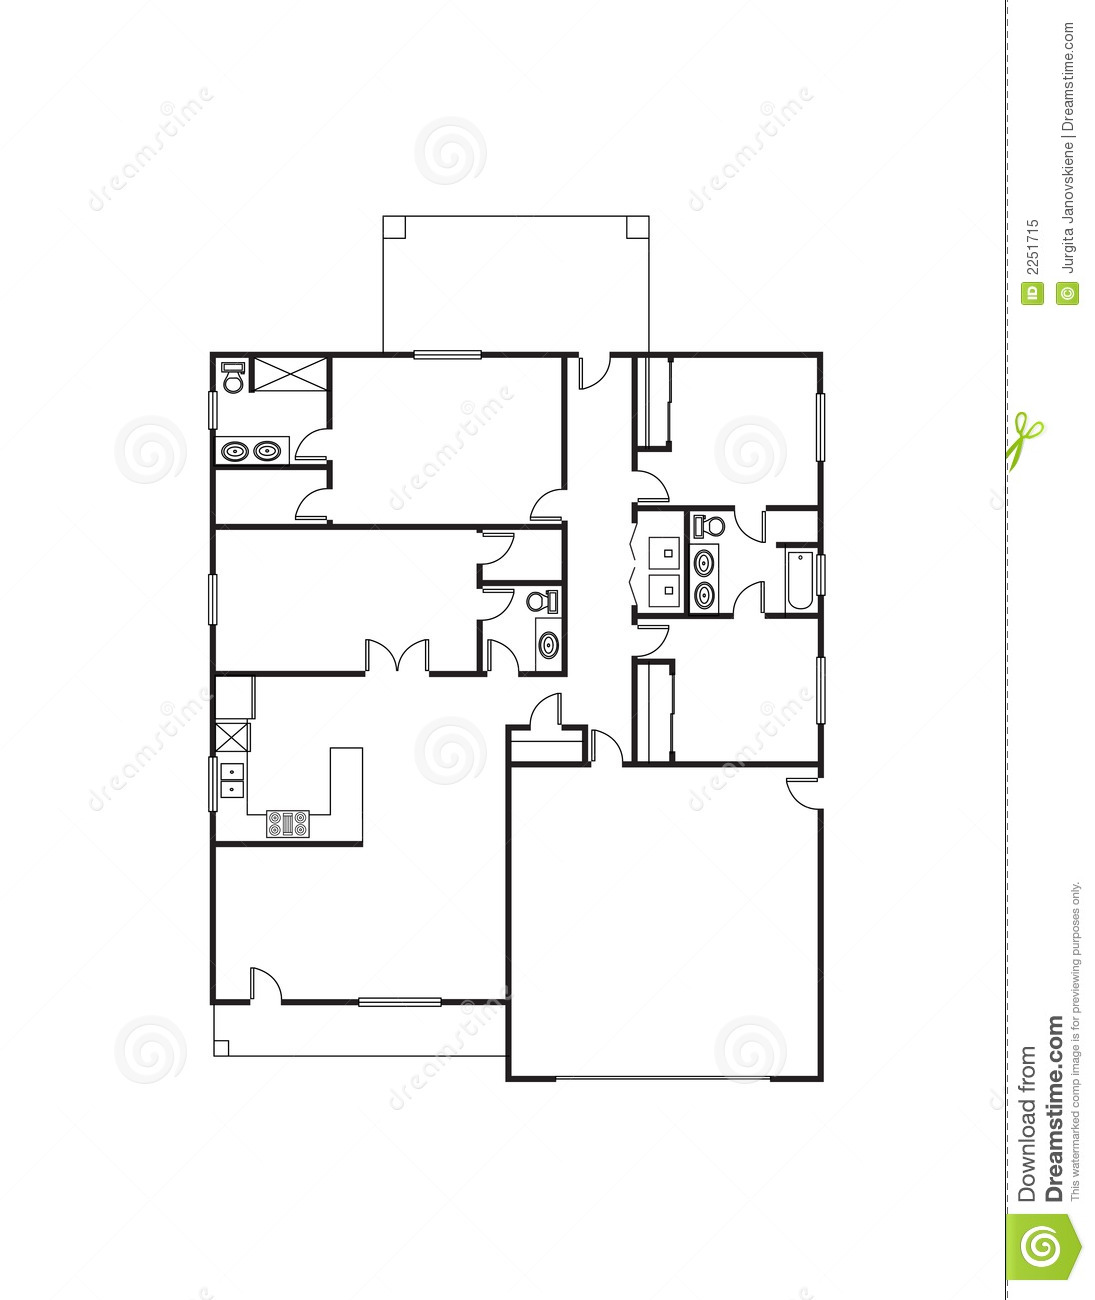 House plan royalty free stock photo image 2251715 for Home planners house plans